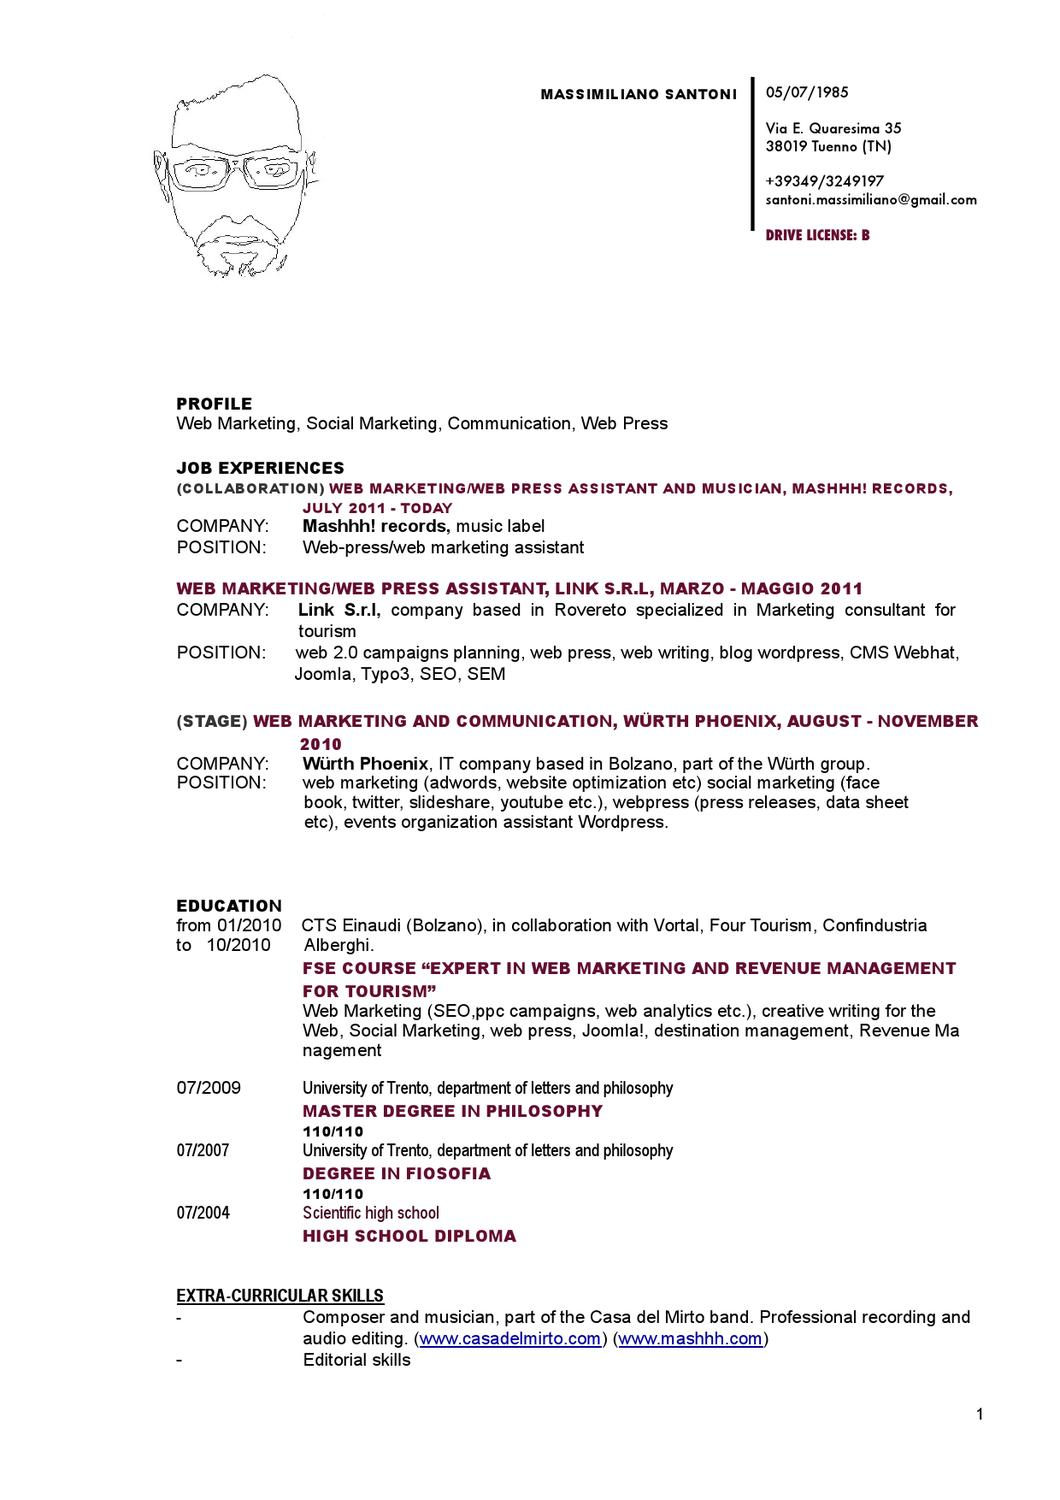 massimiliano santoni resume by massimiliano santoni